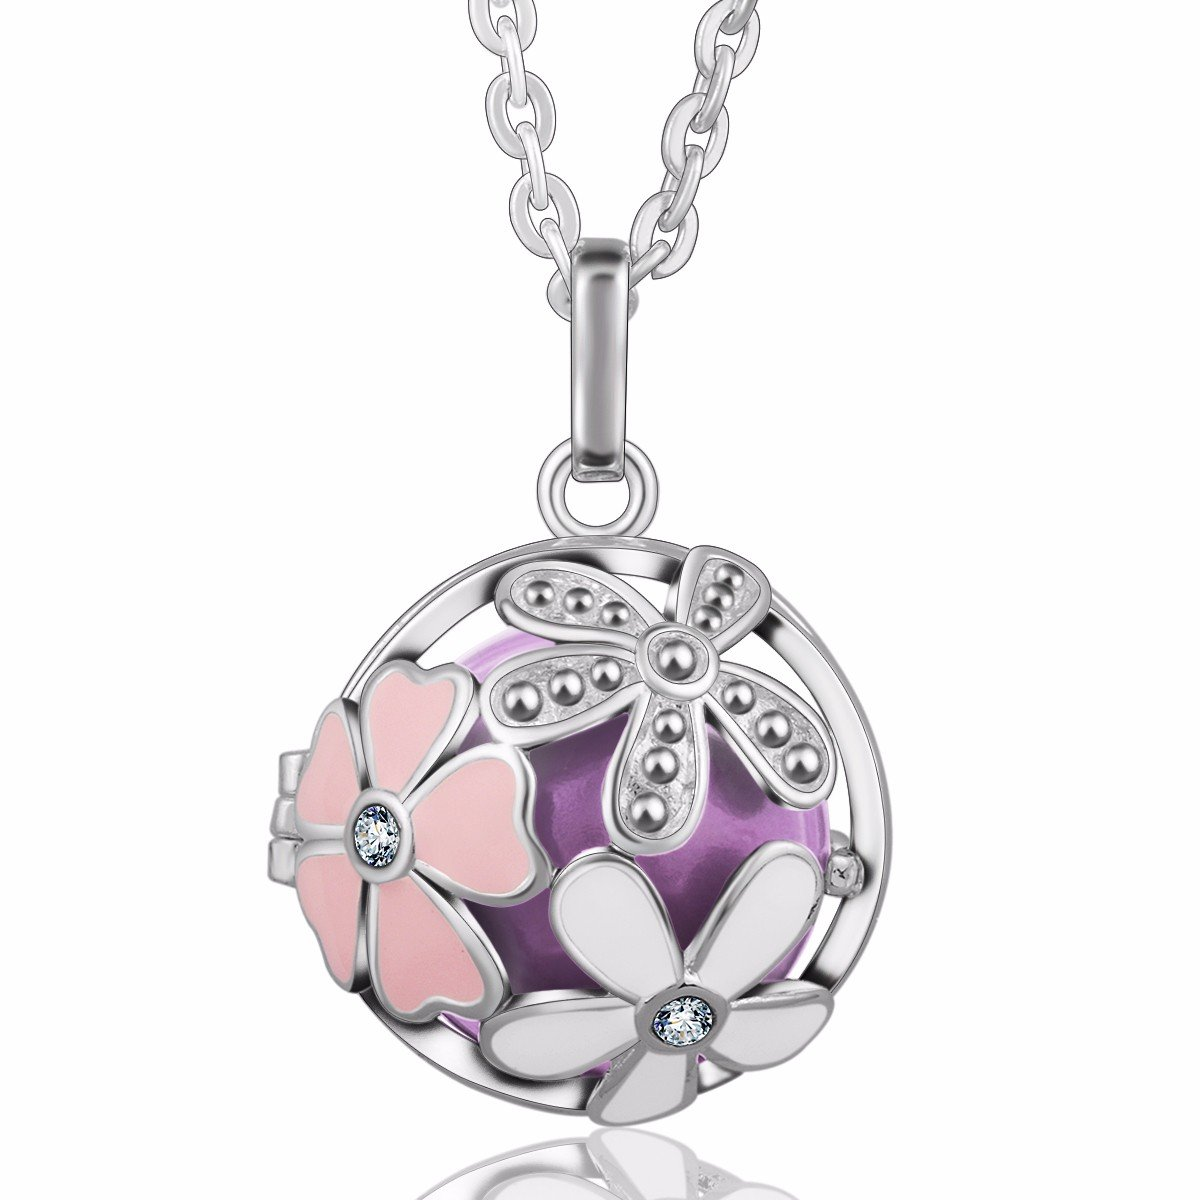 Eudora Harmony Bola Summer Flower 20mm Musical Chime Pendant 30 inches Necklace Prayer Ball